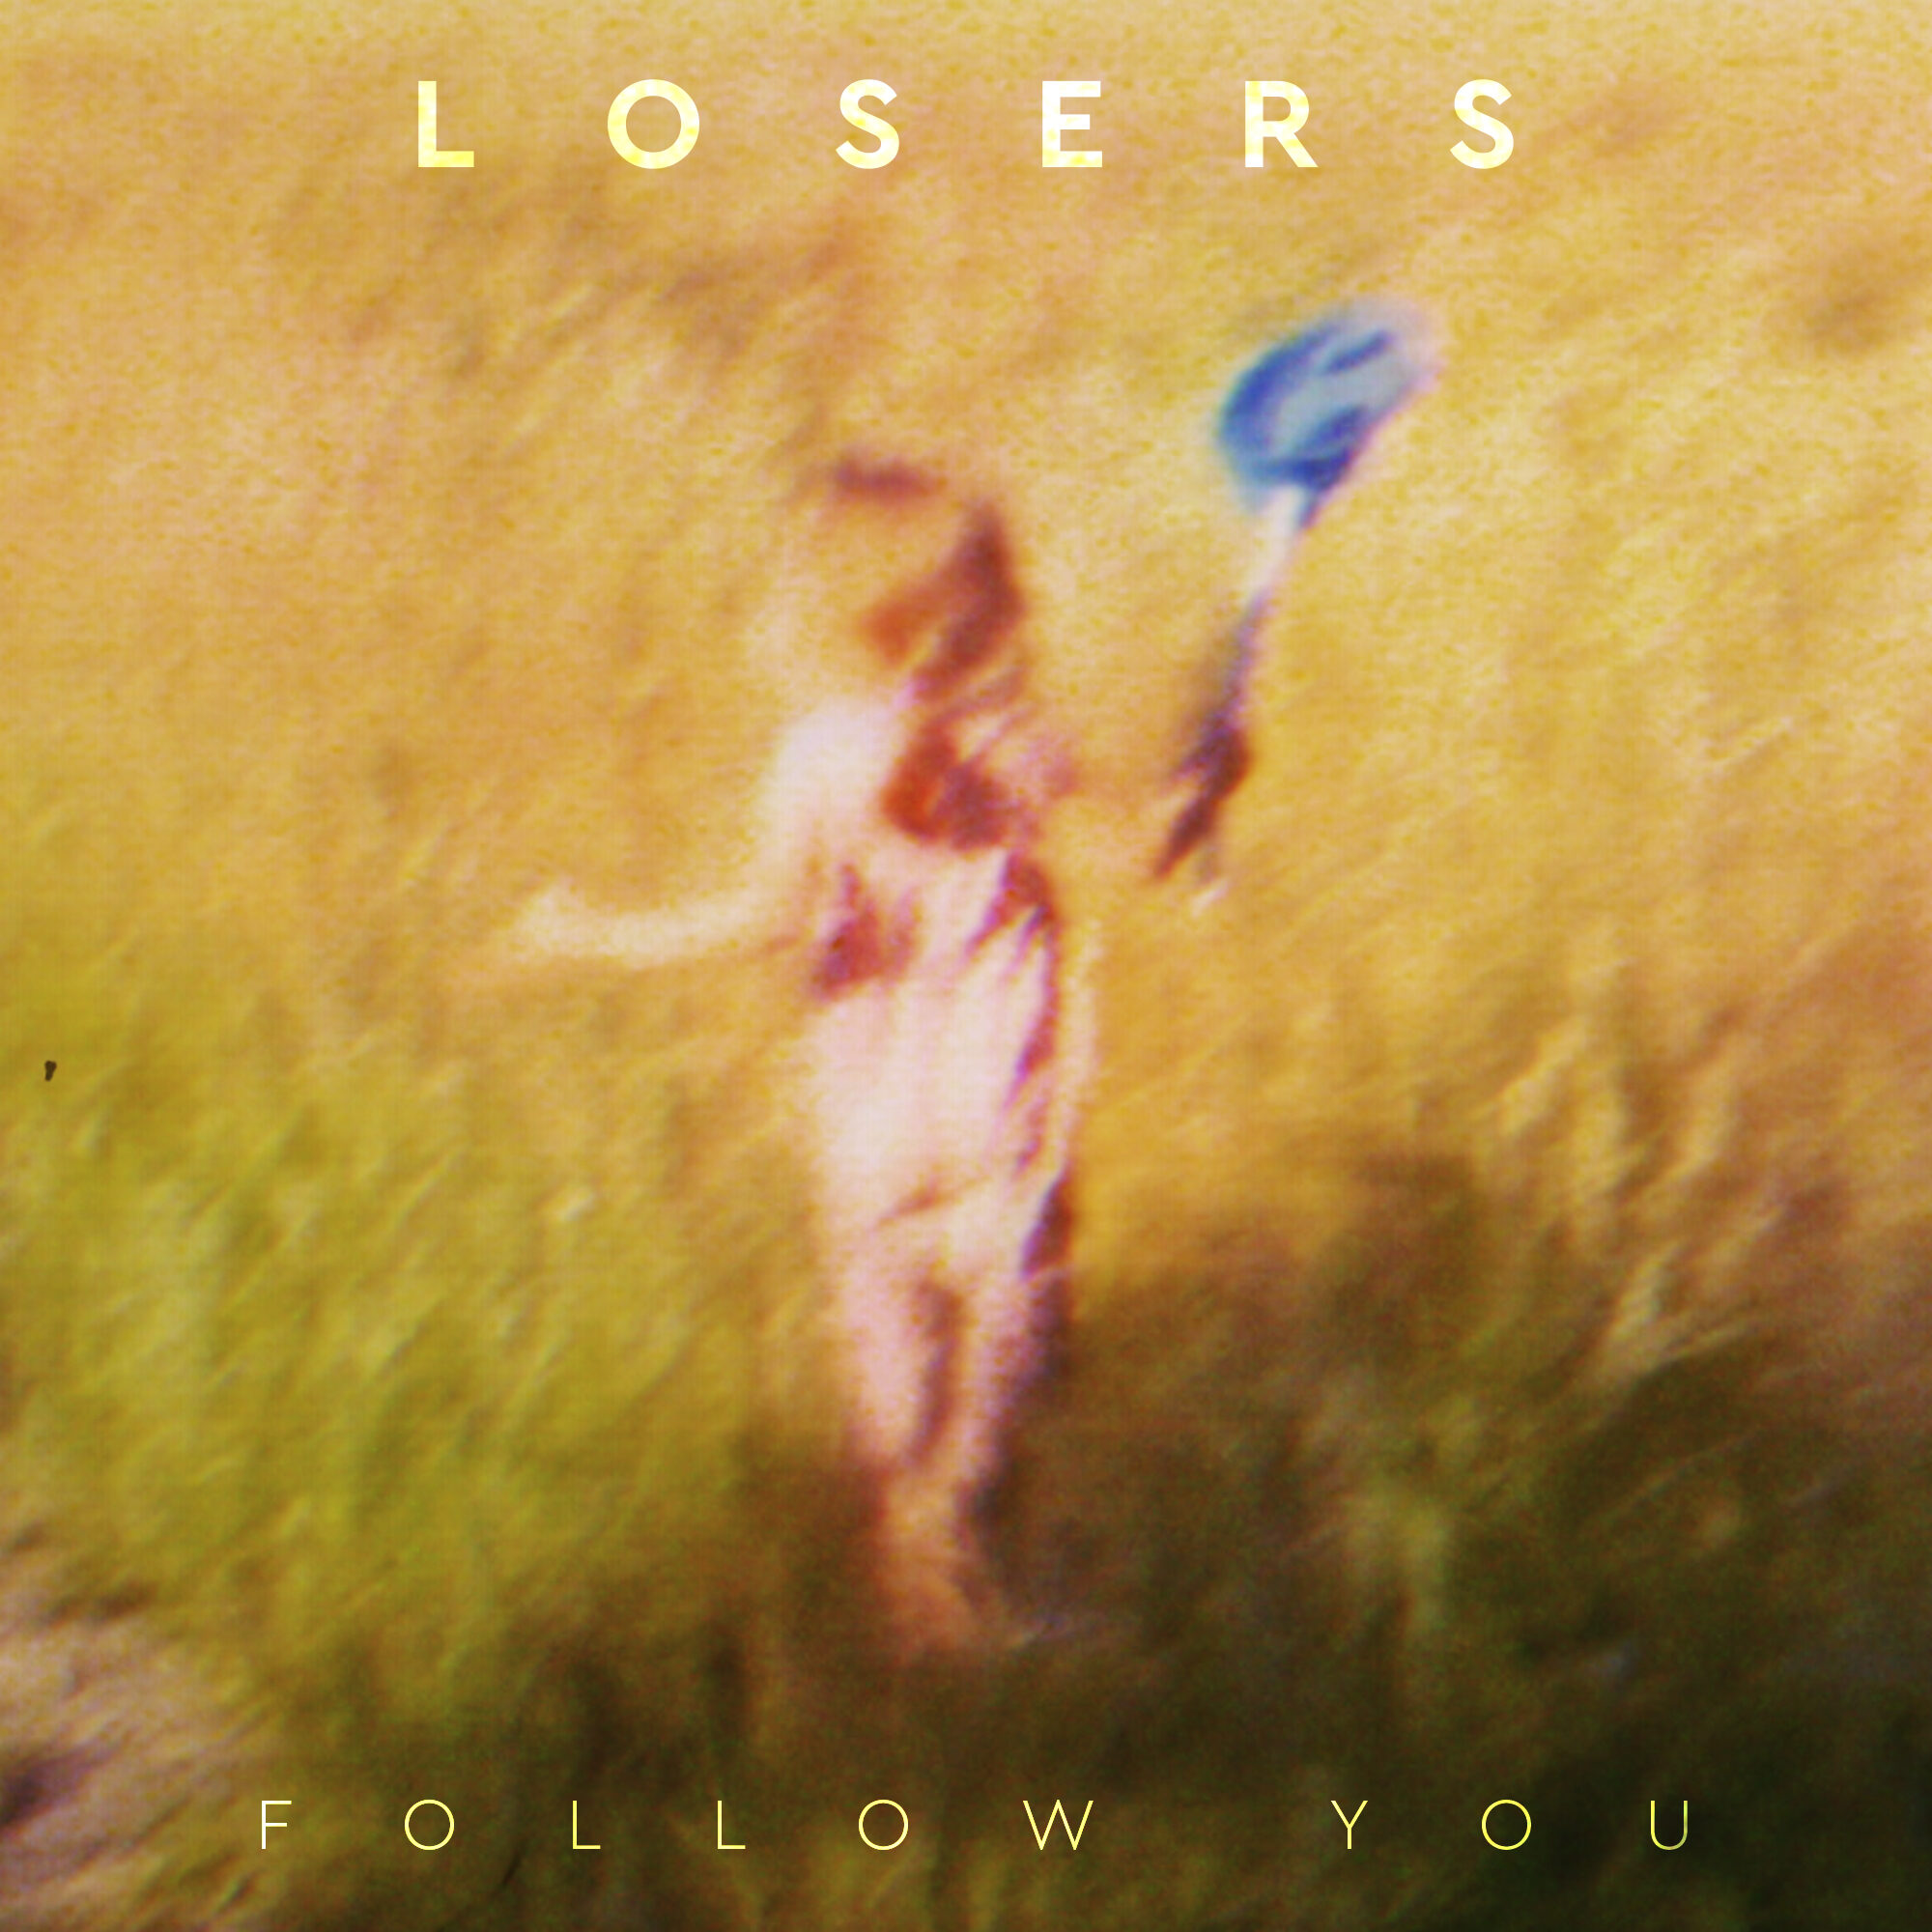 LOSERS_FOLLOW YOU [SQUARE] 2K